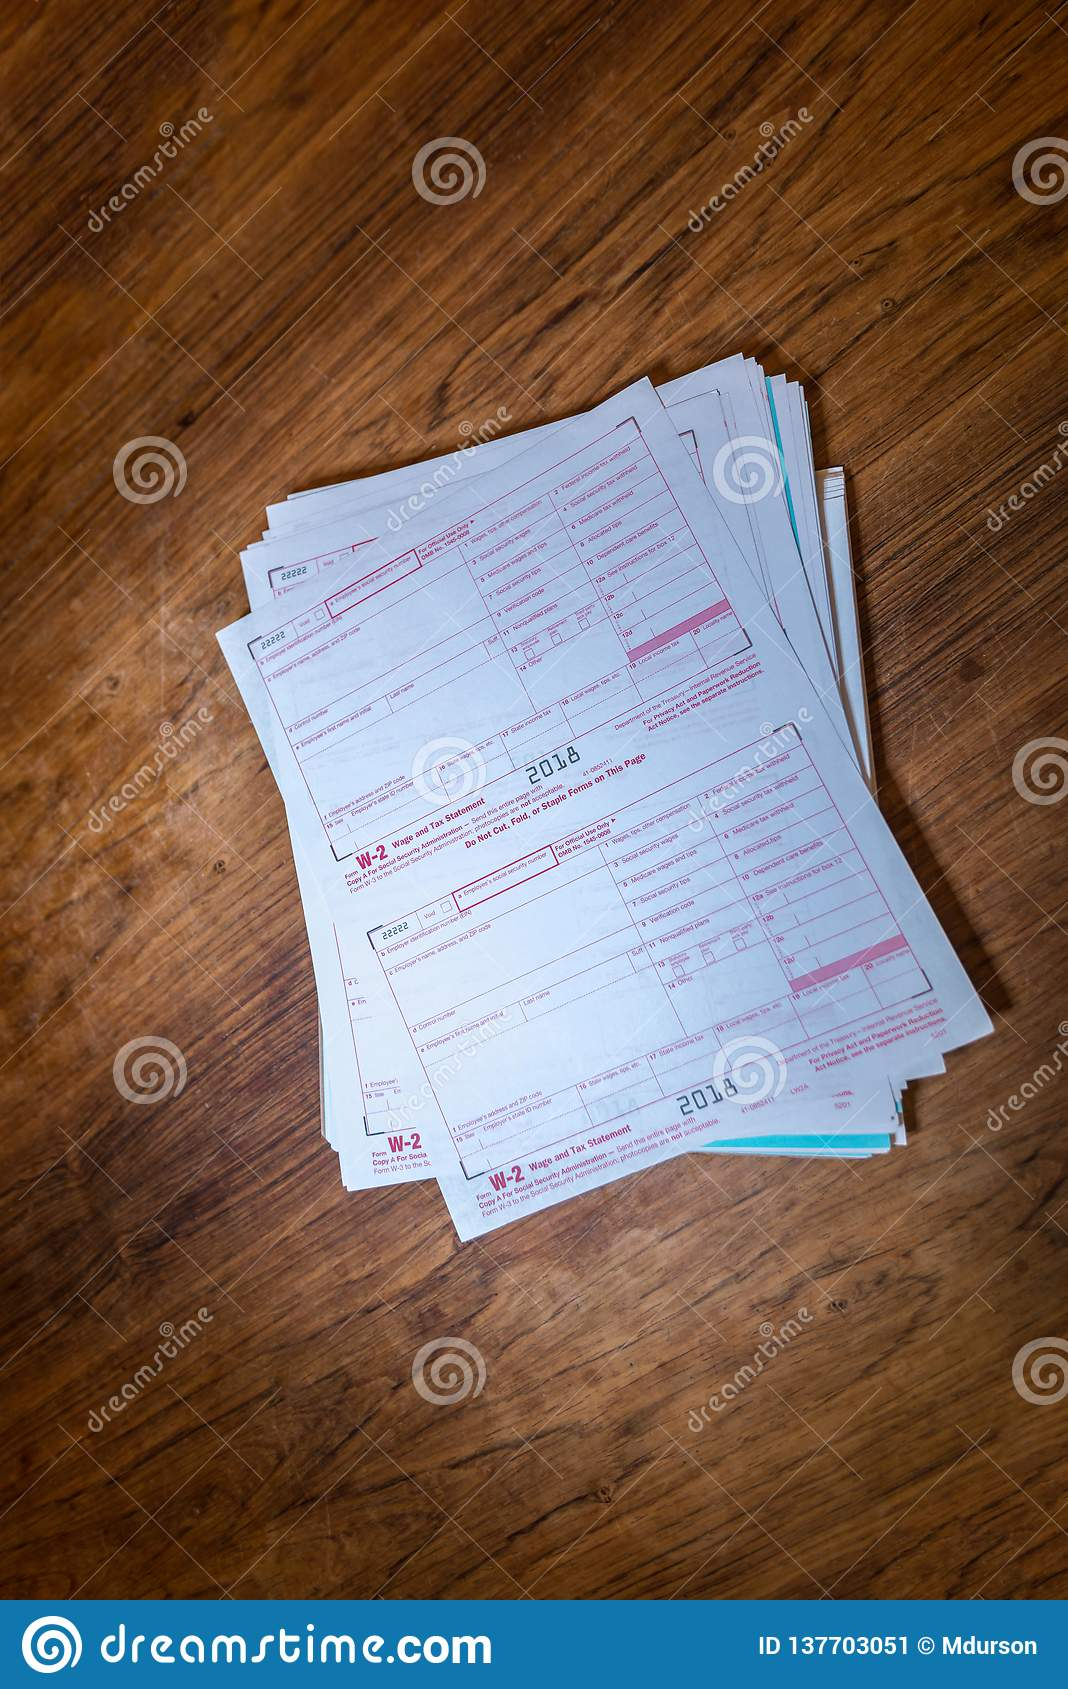 W-2 2018 Tax Forms On A Table Editorial Photo - Image of april